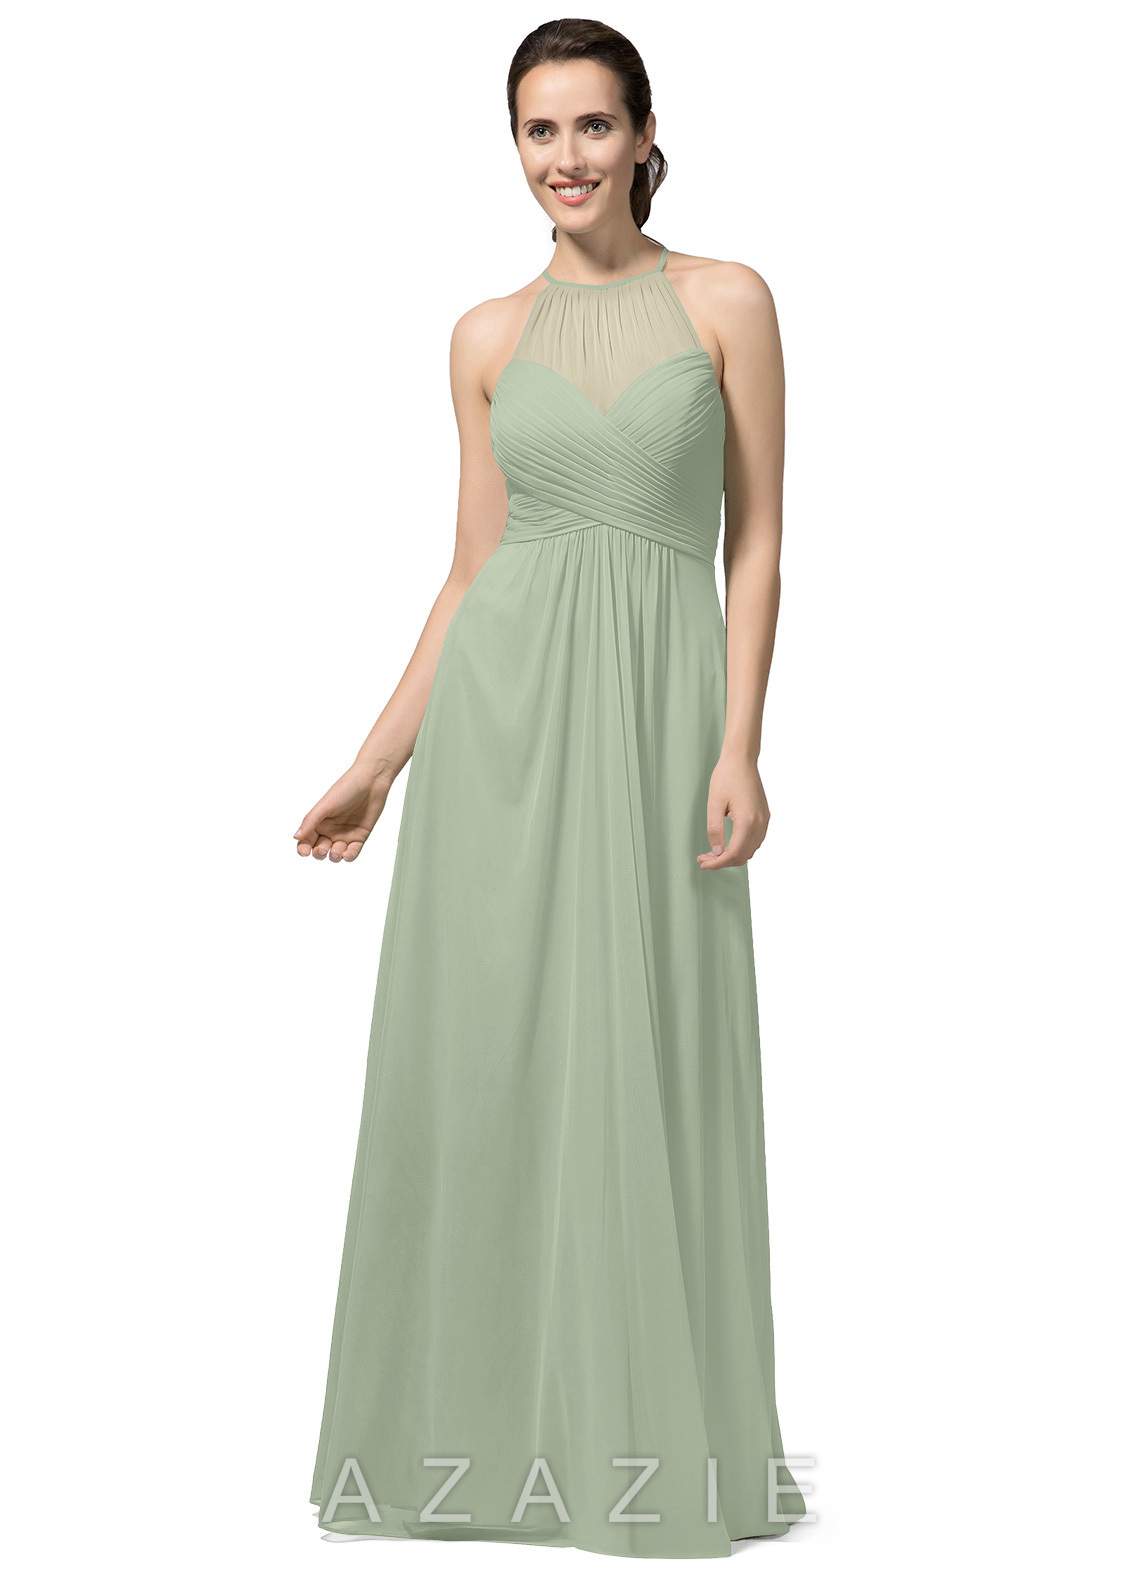 c2020a591c Azazie Darien Bridesmaid Dress